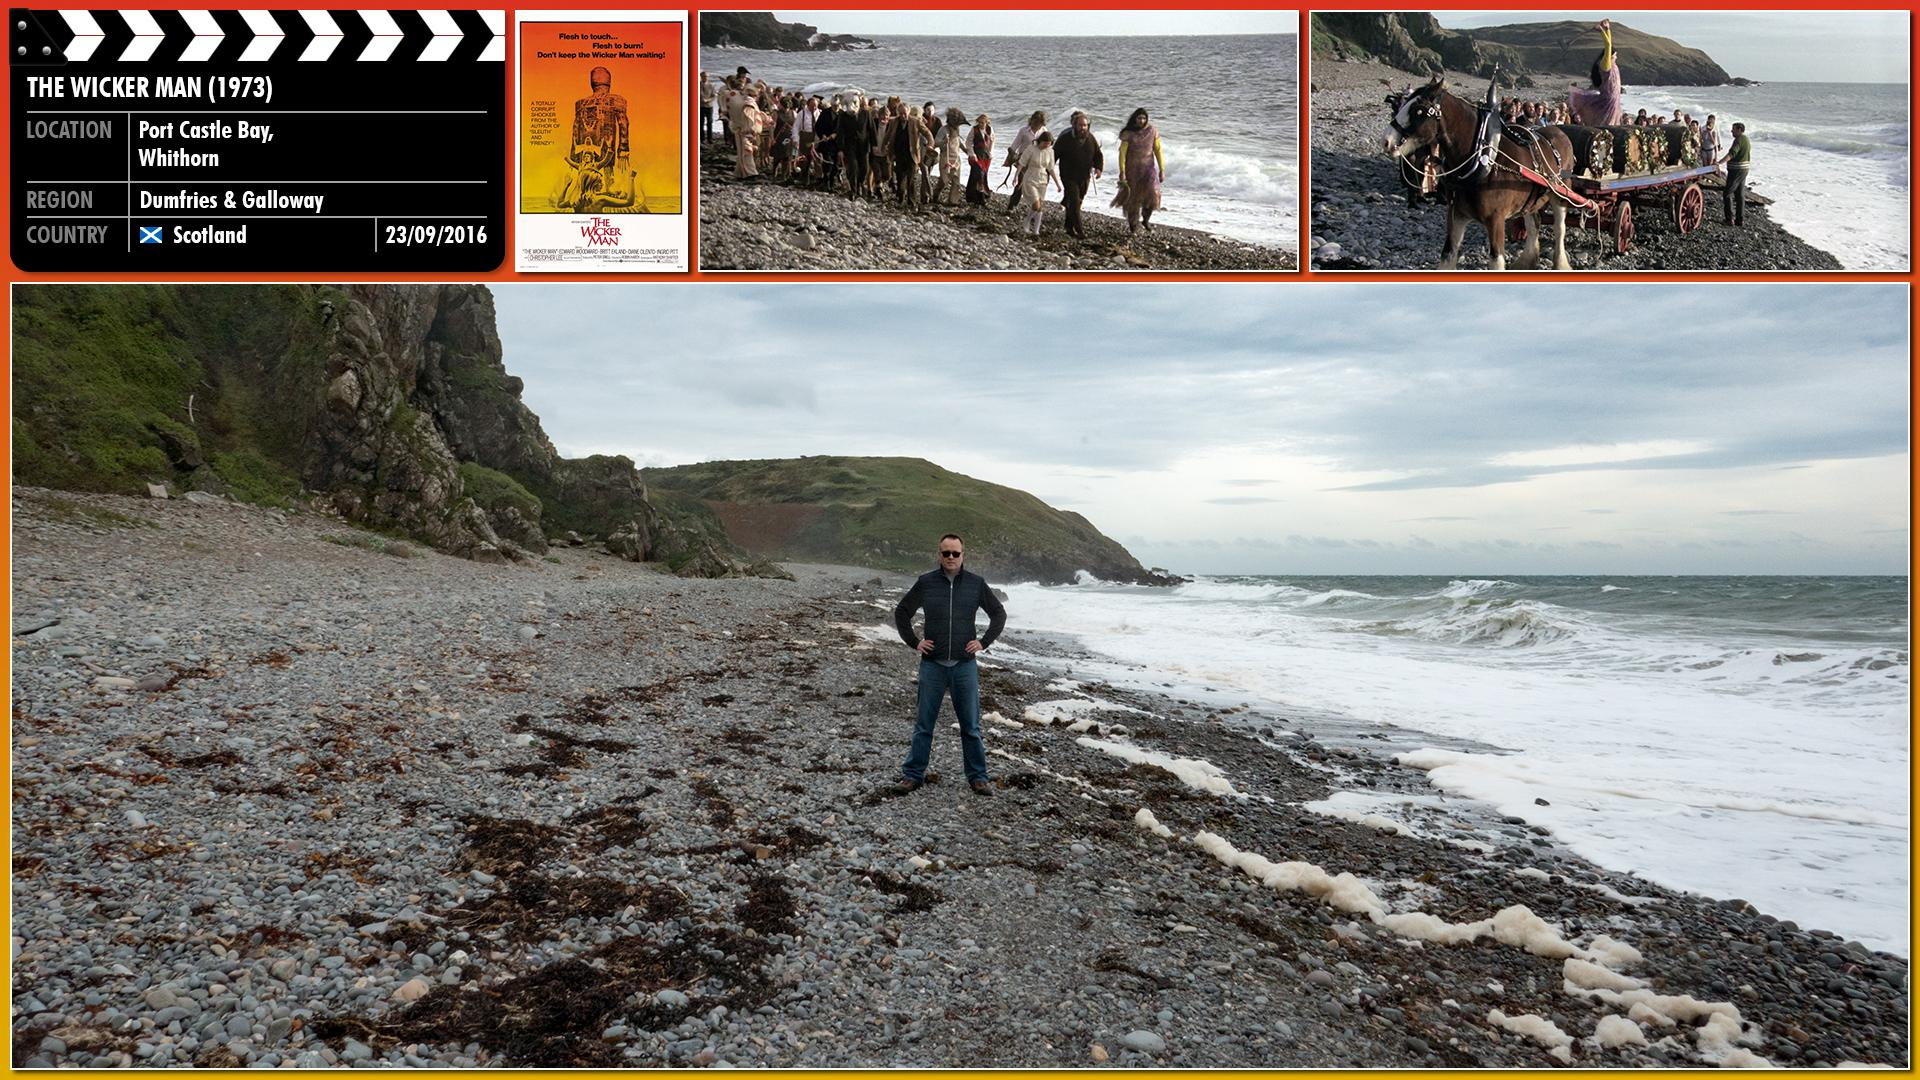 Filming location photo for The Wicker Man (1973) 5 of 7